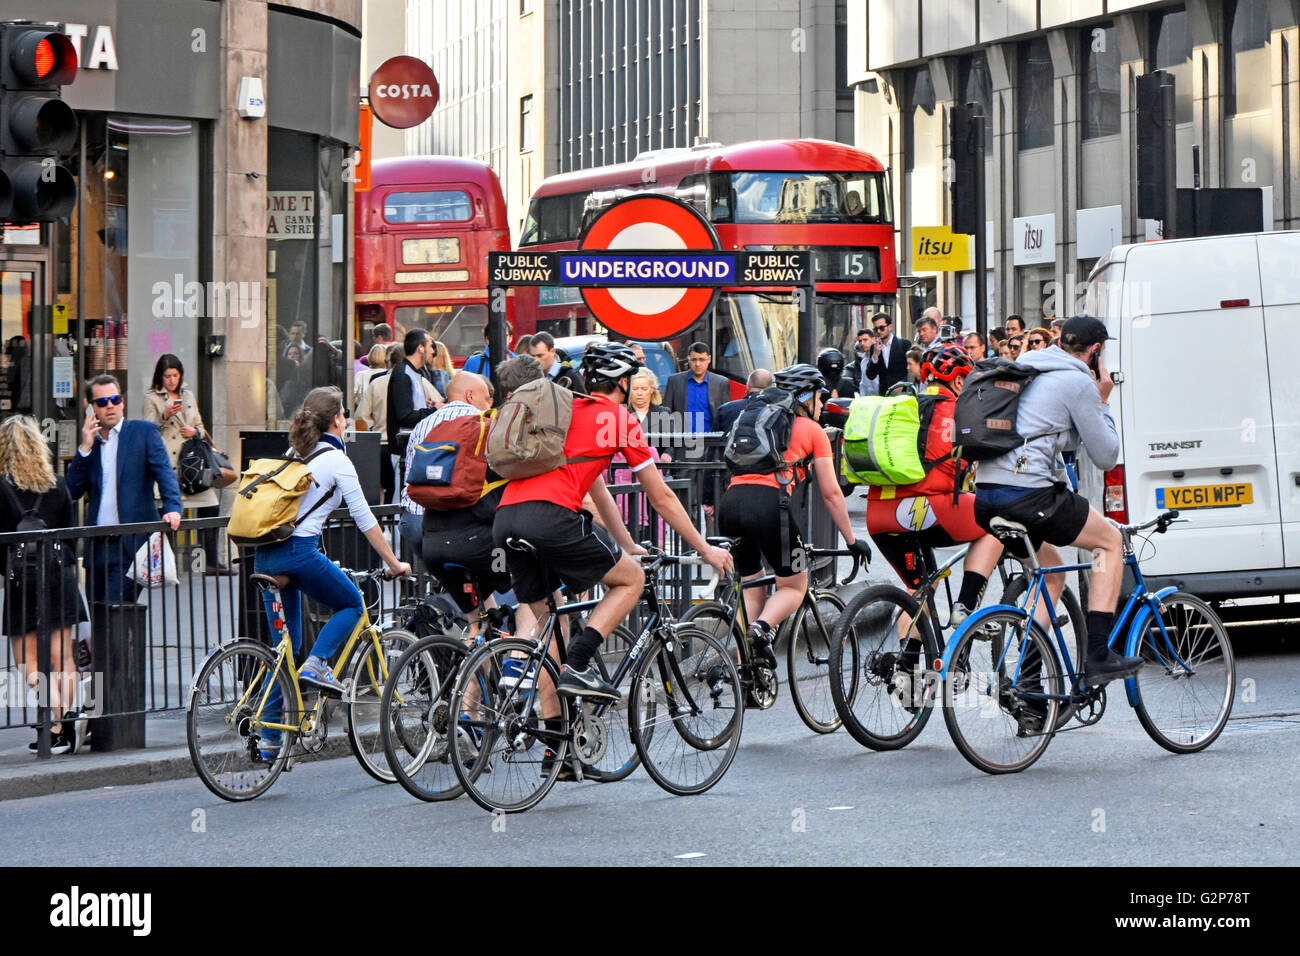 Evening rush hour in City of London England UK as workers cycle home cyclists competing with other commuters and - Stock Image